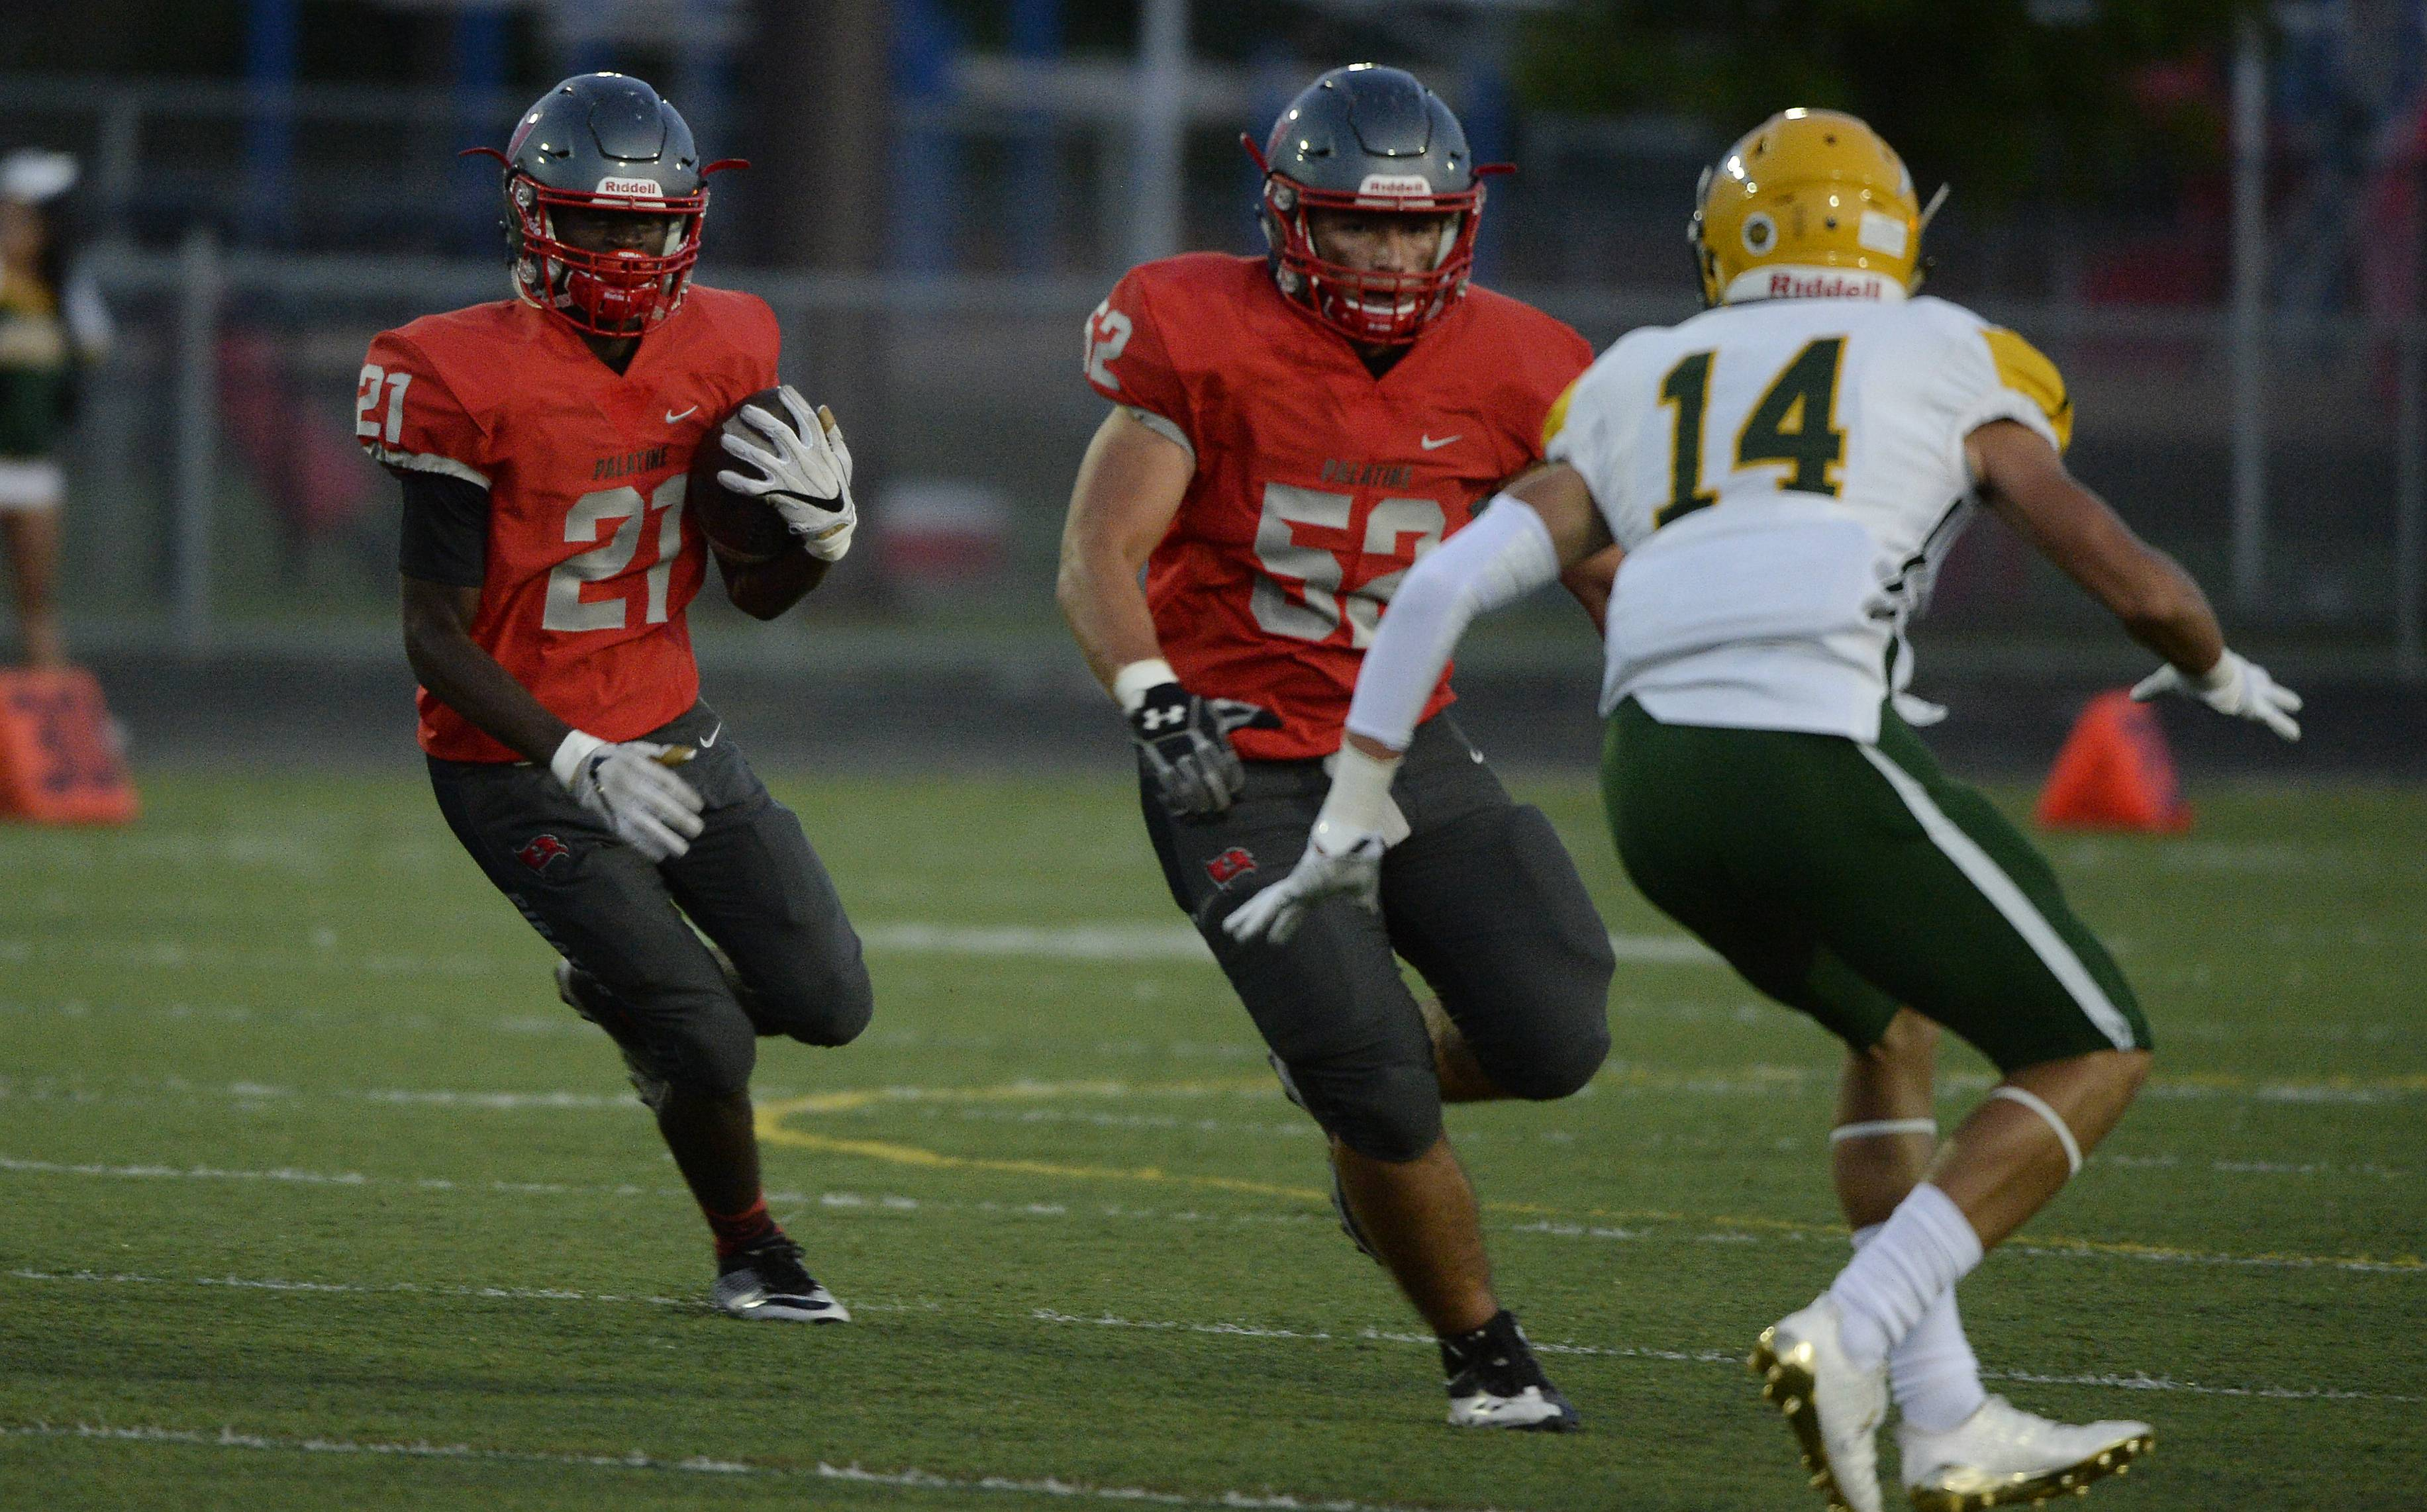 Palatine running back Marshawn Rayford looks for a crease in the first quarter against visiting Stevenson on Friday.